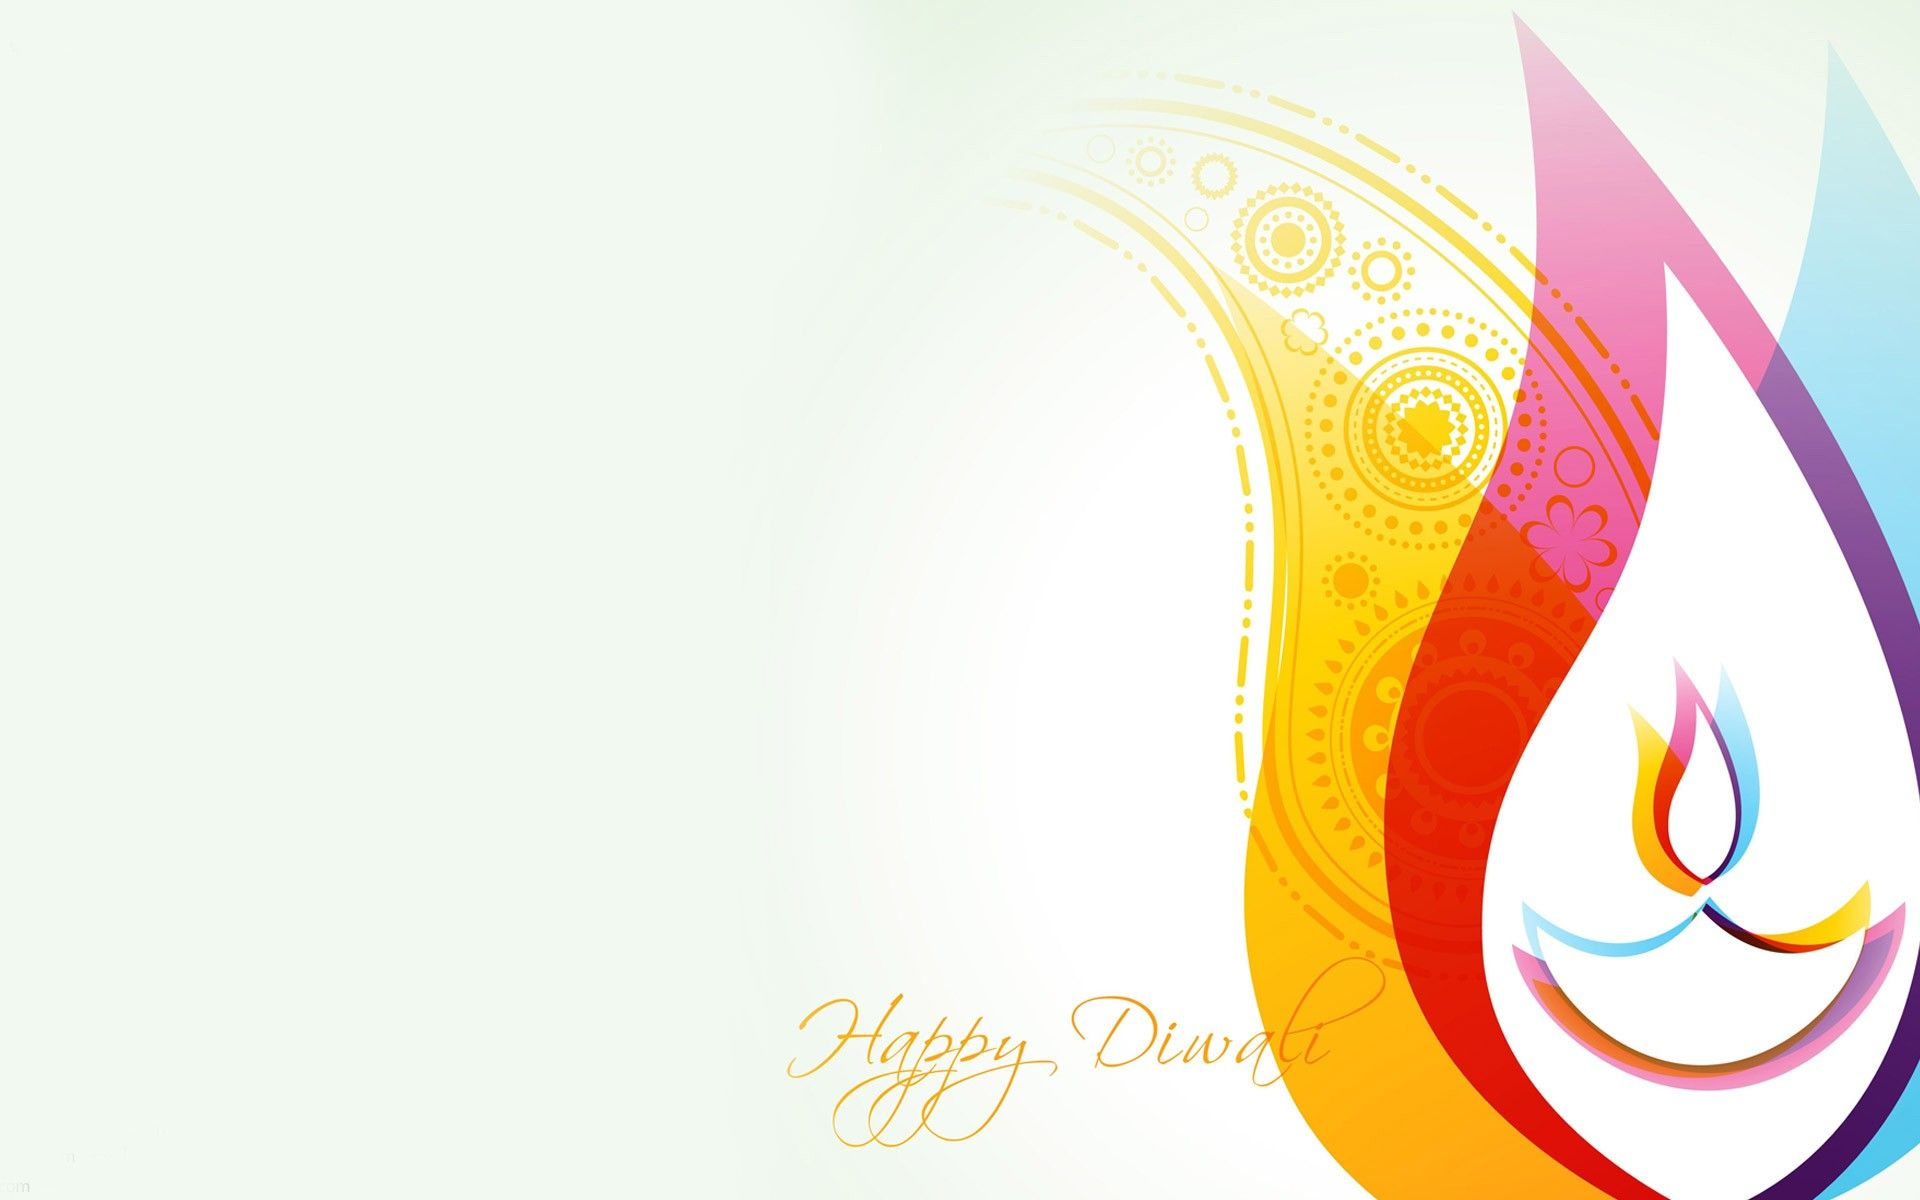 21 Awesome Happy Diwali Wallpapers In High Quality Simge Elcum